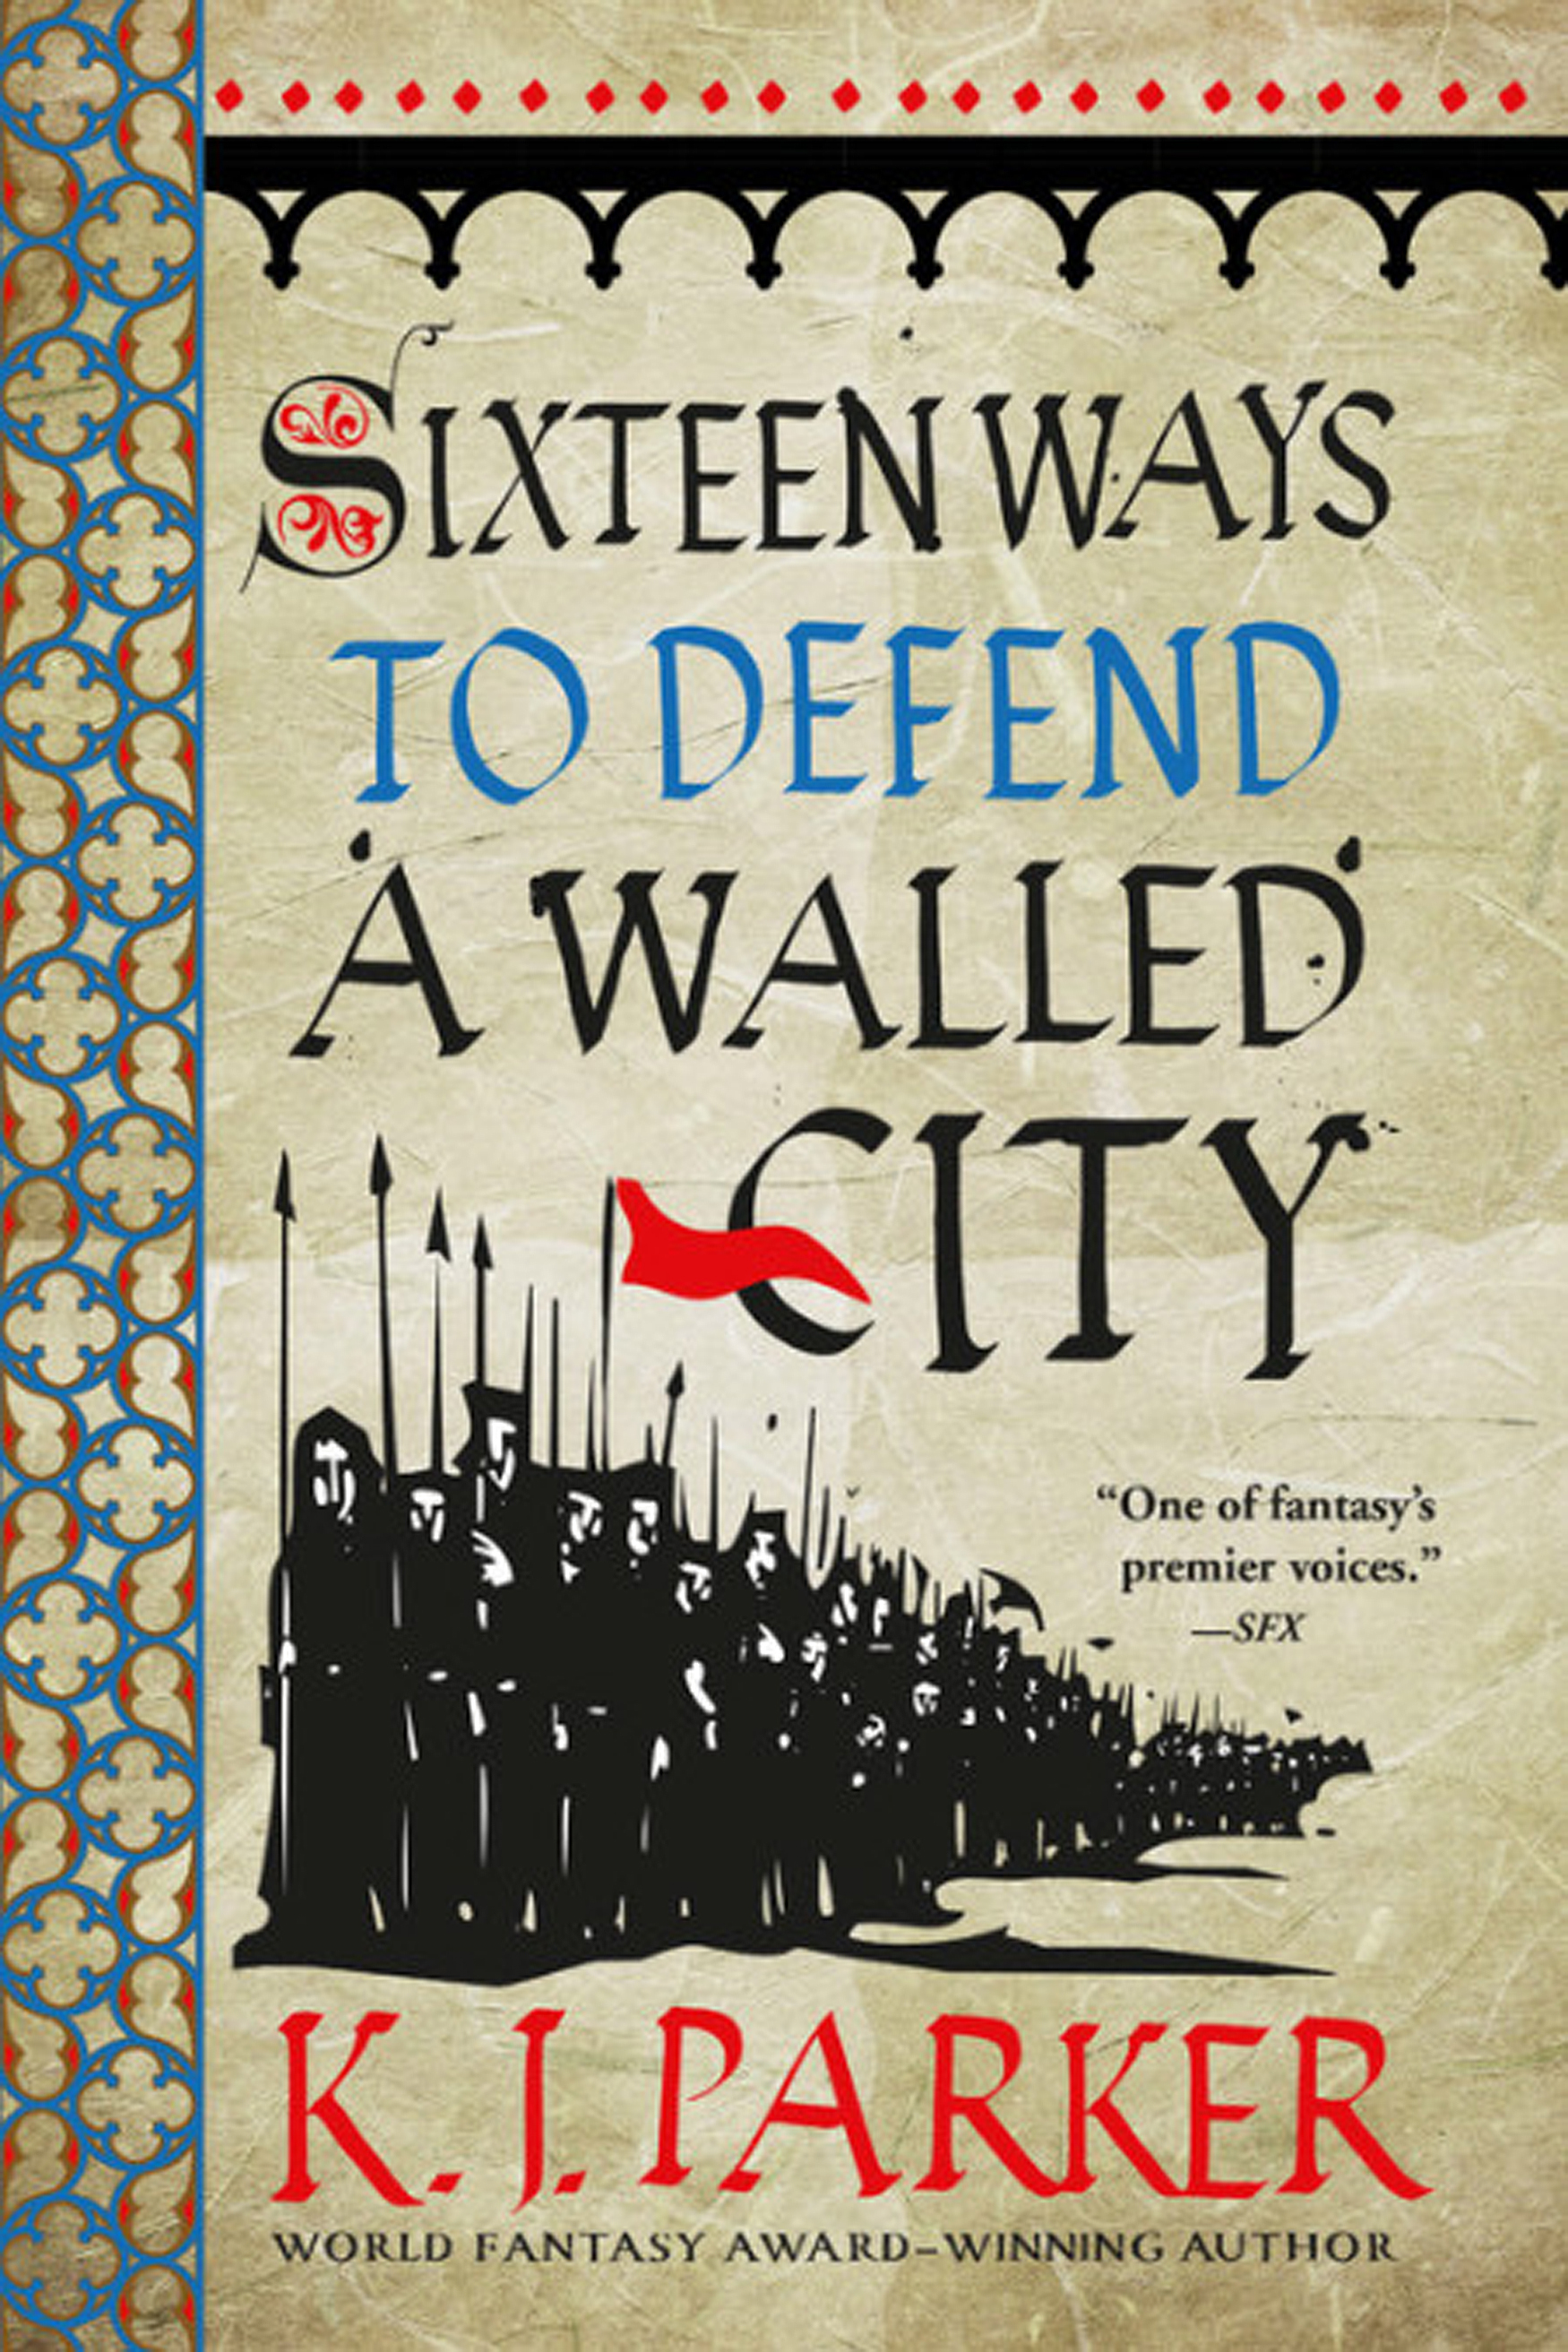 16 WAYS TO DEFEND A WALLED CITY